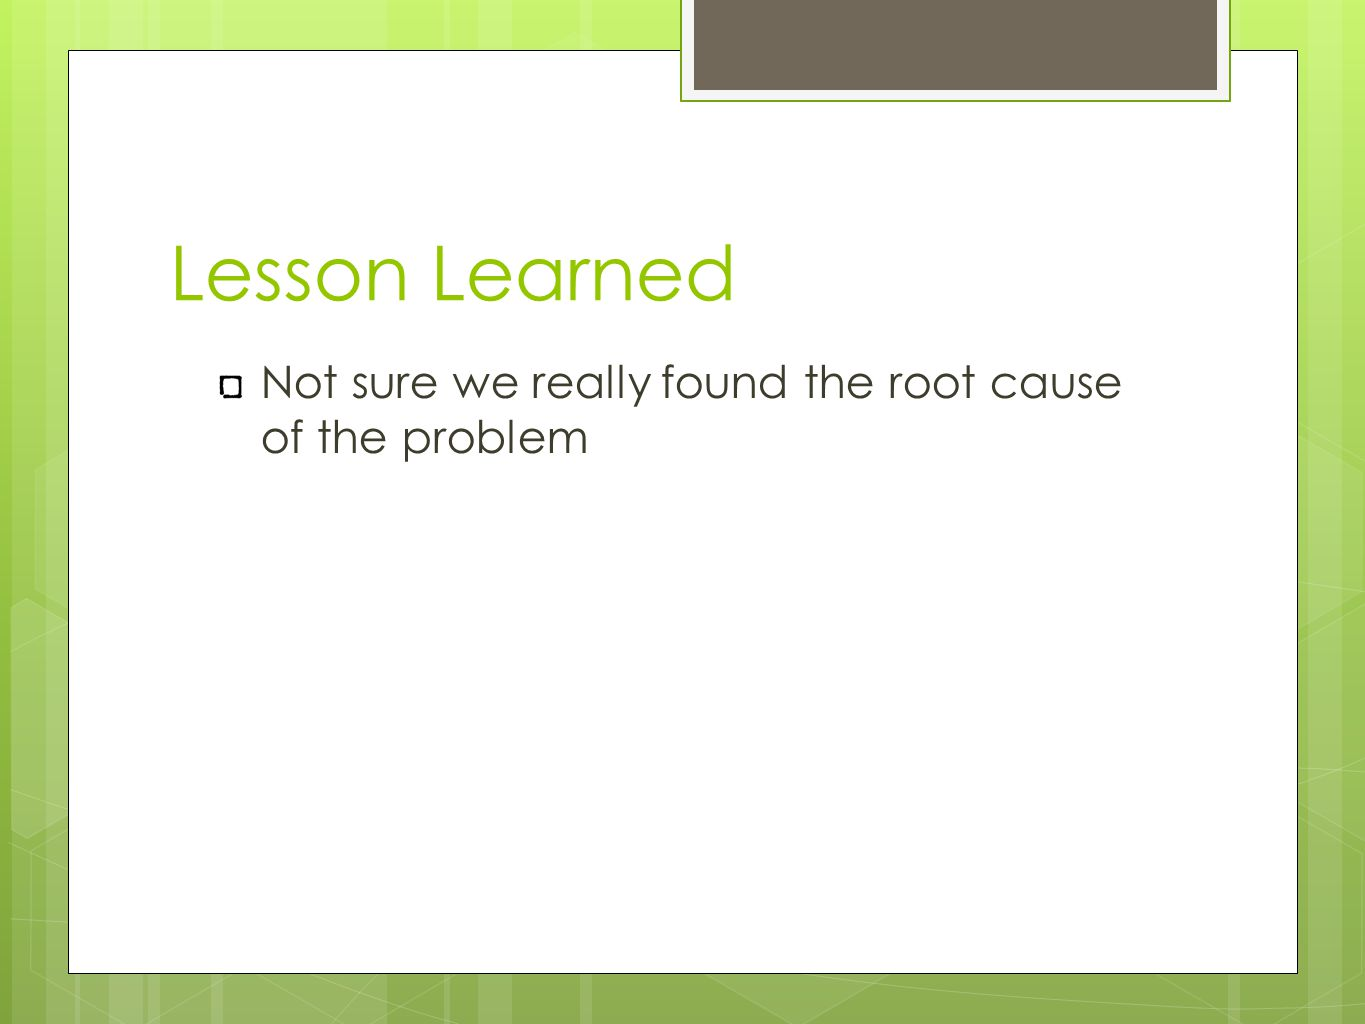 Lesson Learned Not sure we really found the root cause of the problem